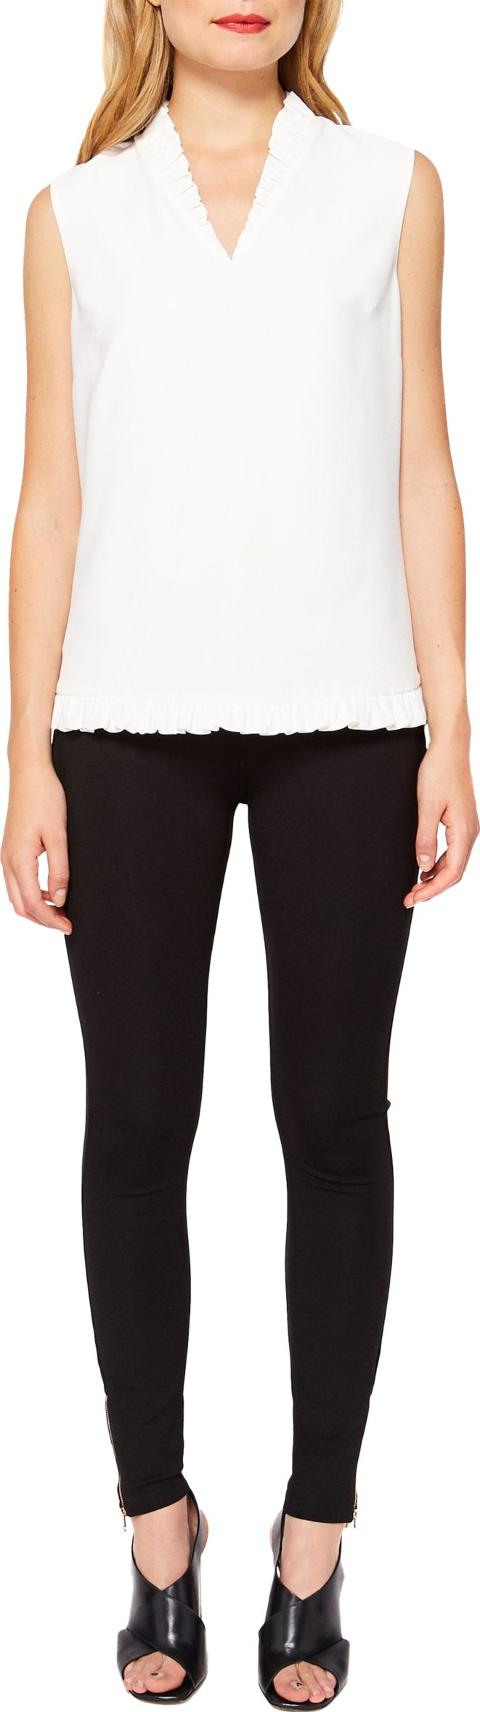 d254a5559ca94 Shop Ted Baker Jeans for Women - Obsessory